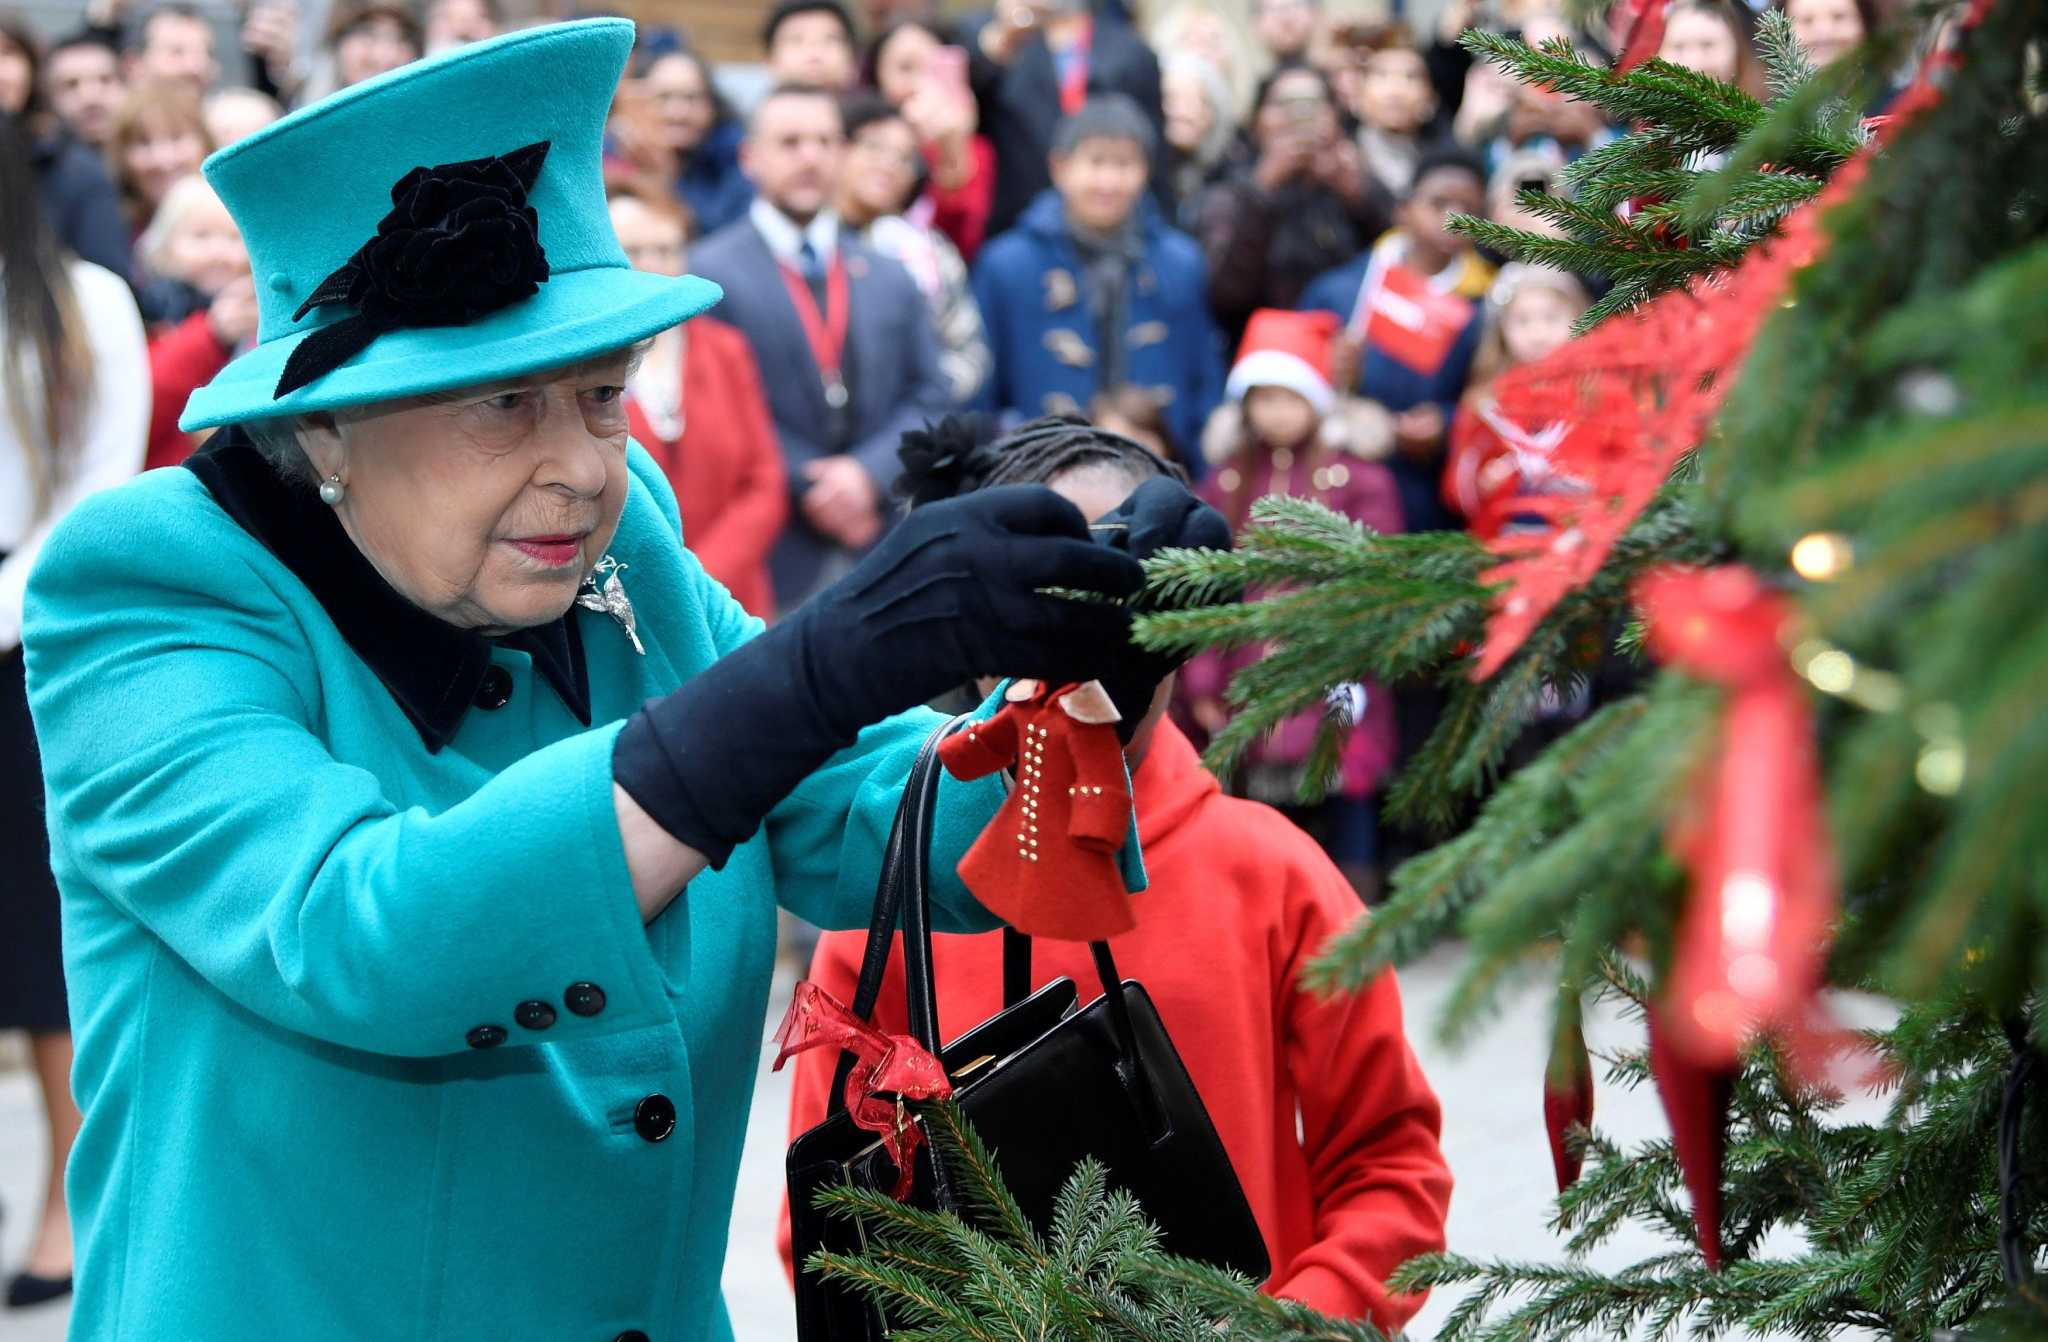 Review: 'A Royal Christmas' helps explain how holiday rituals take hold